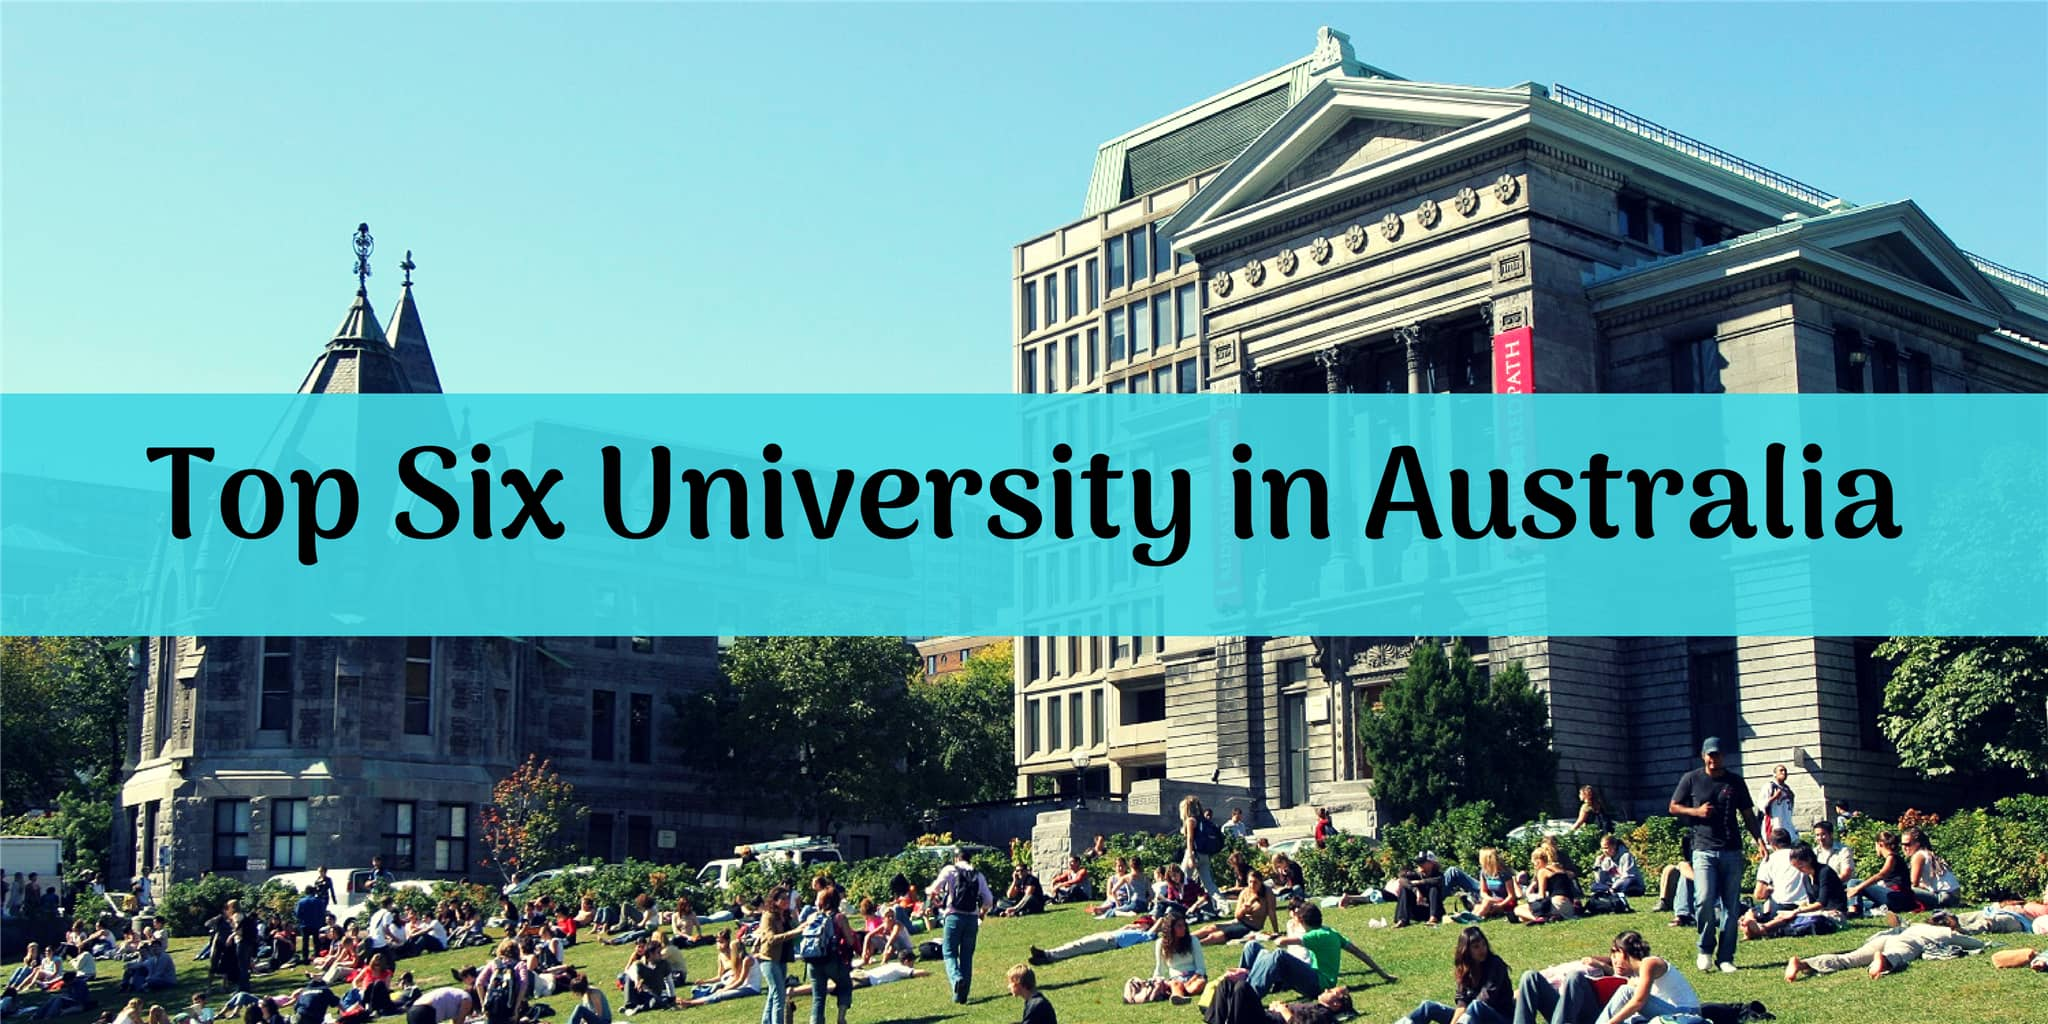 Top Six University in Australia